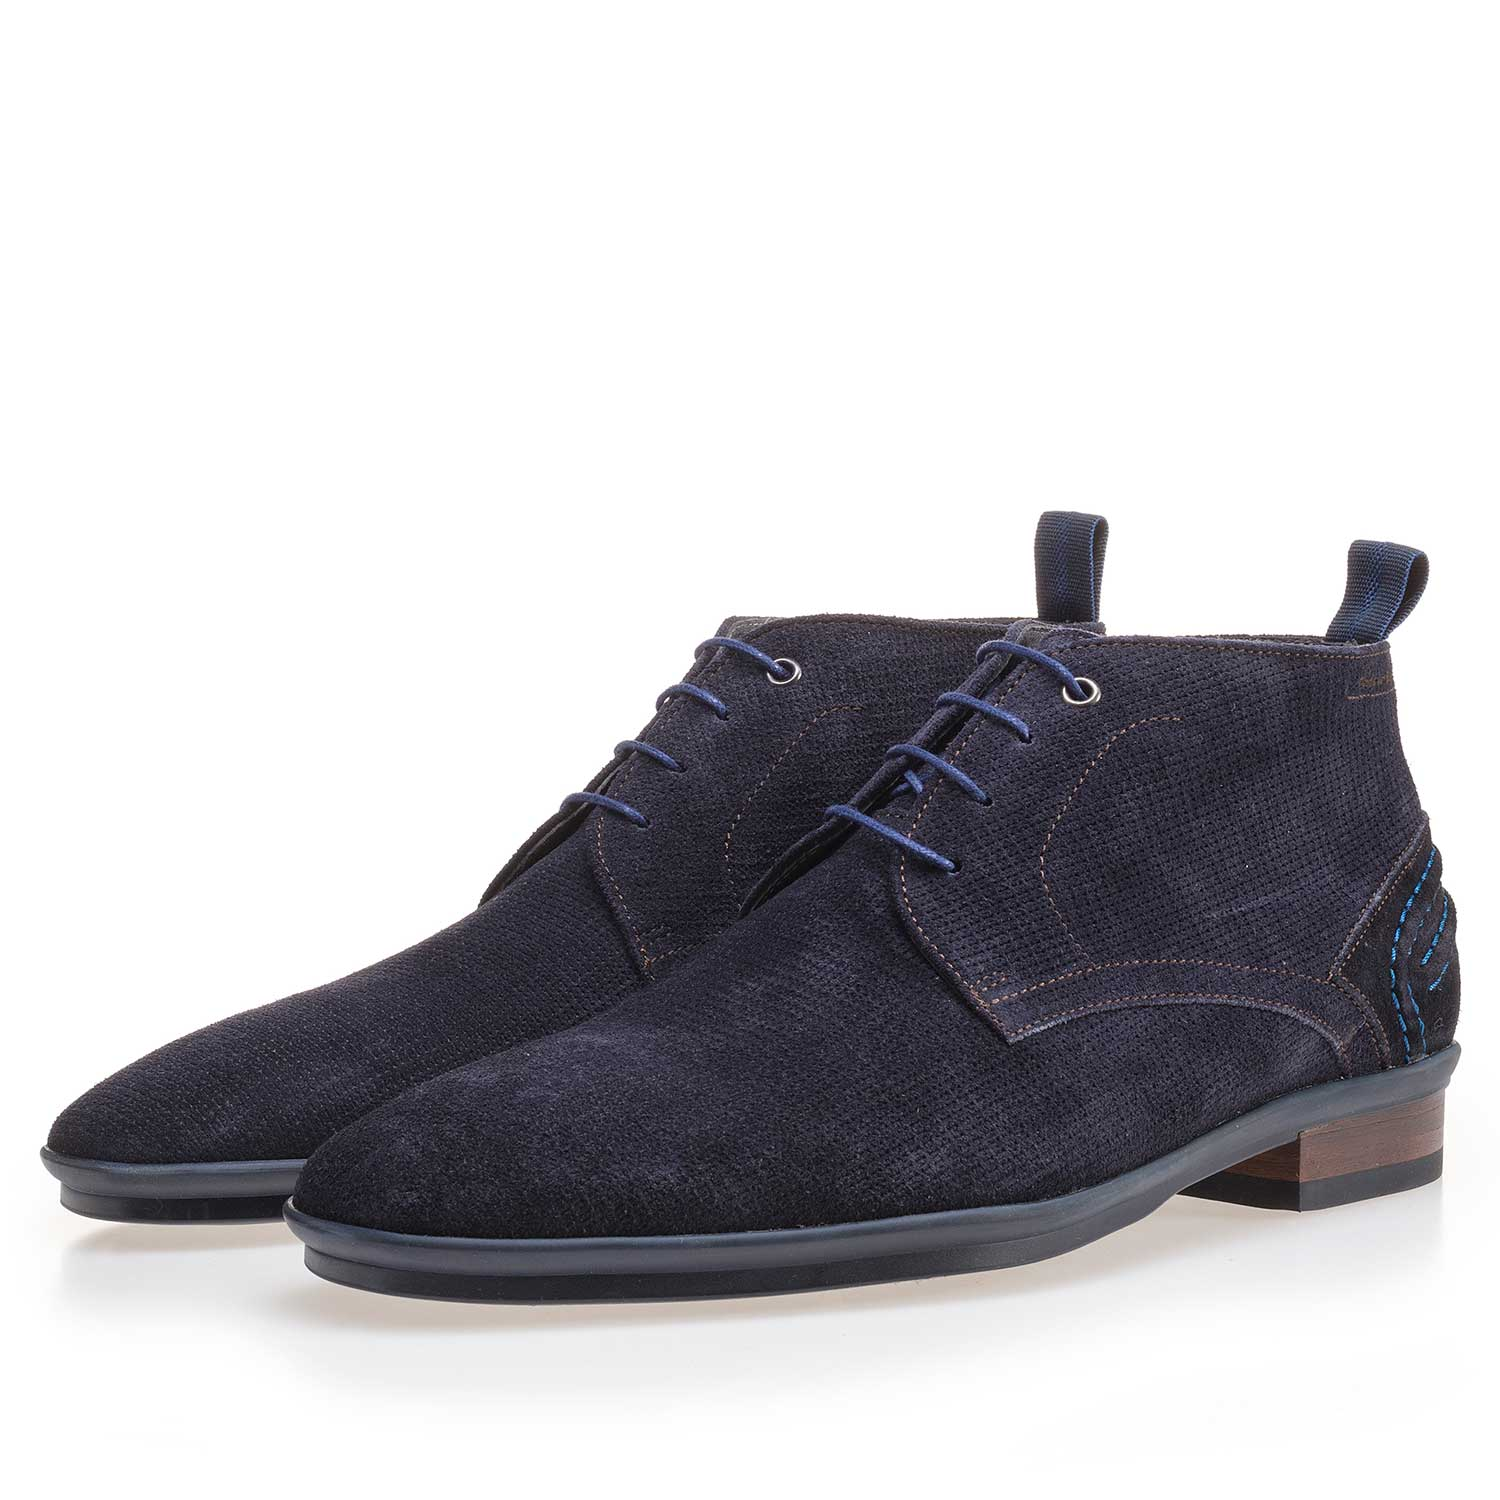 10960/14 - Blue suede leather lace boot with pattern